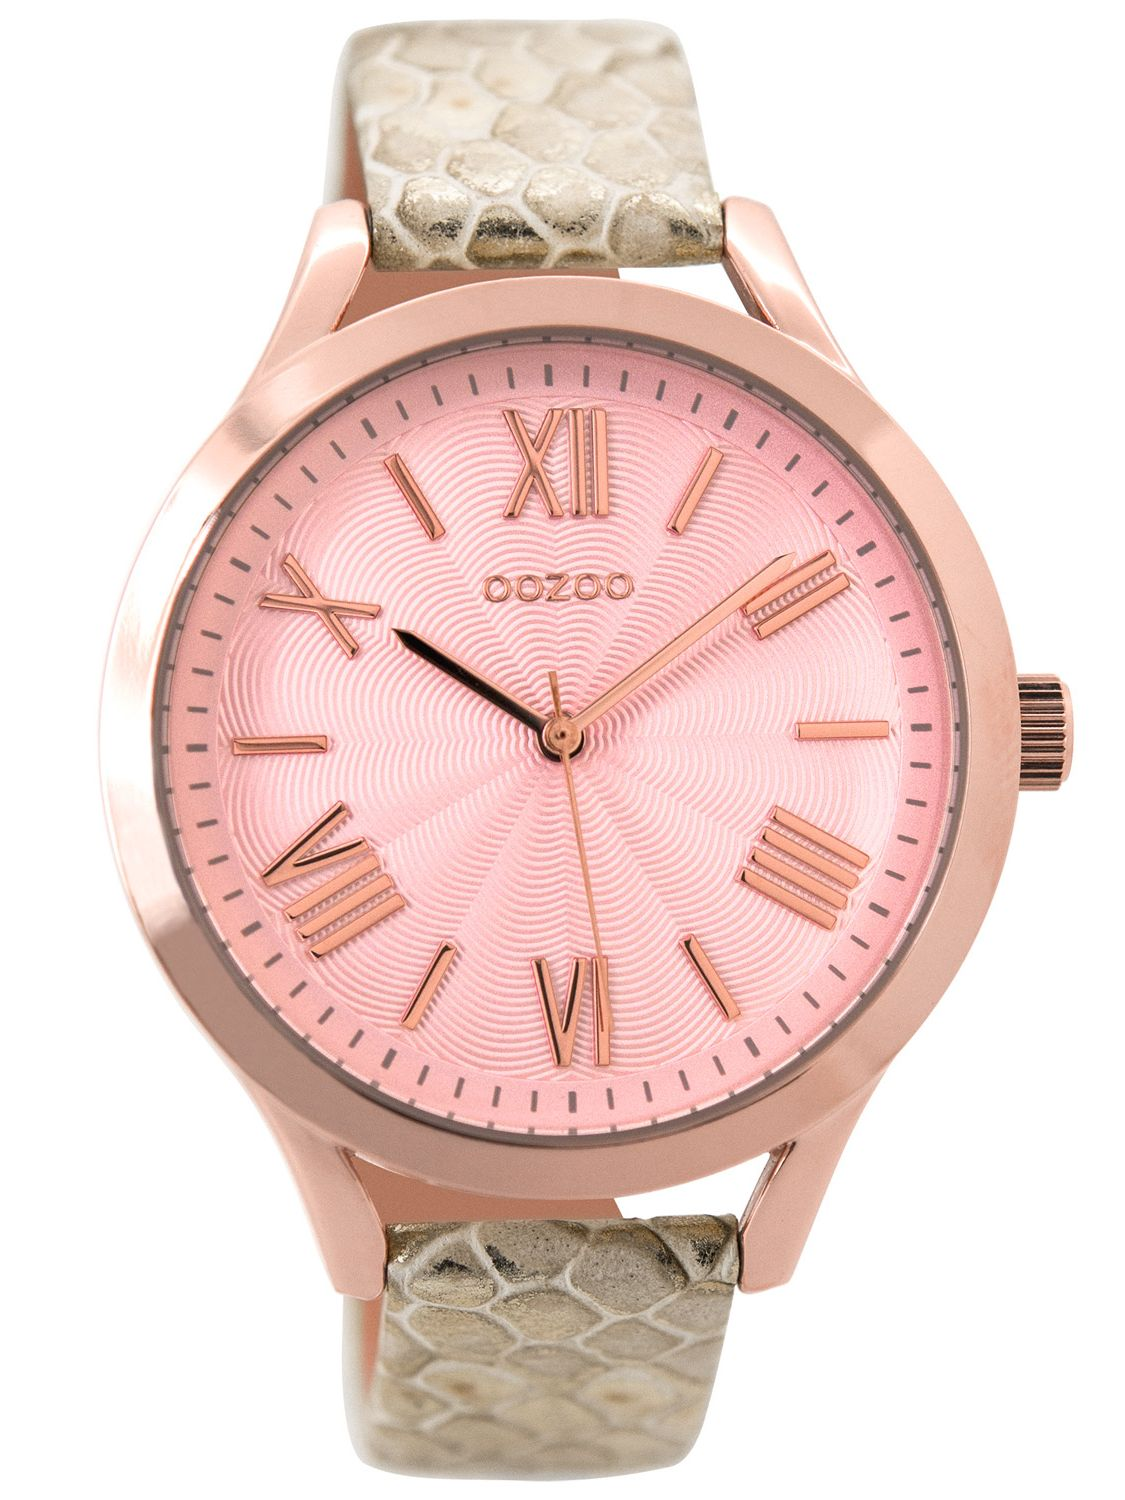 Leather Strap Rose Gold Watch Oozoo C9478 Ladies Watch With Leather Strap Pinkgold Snake 42 Mm